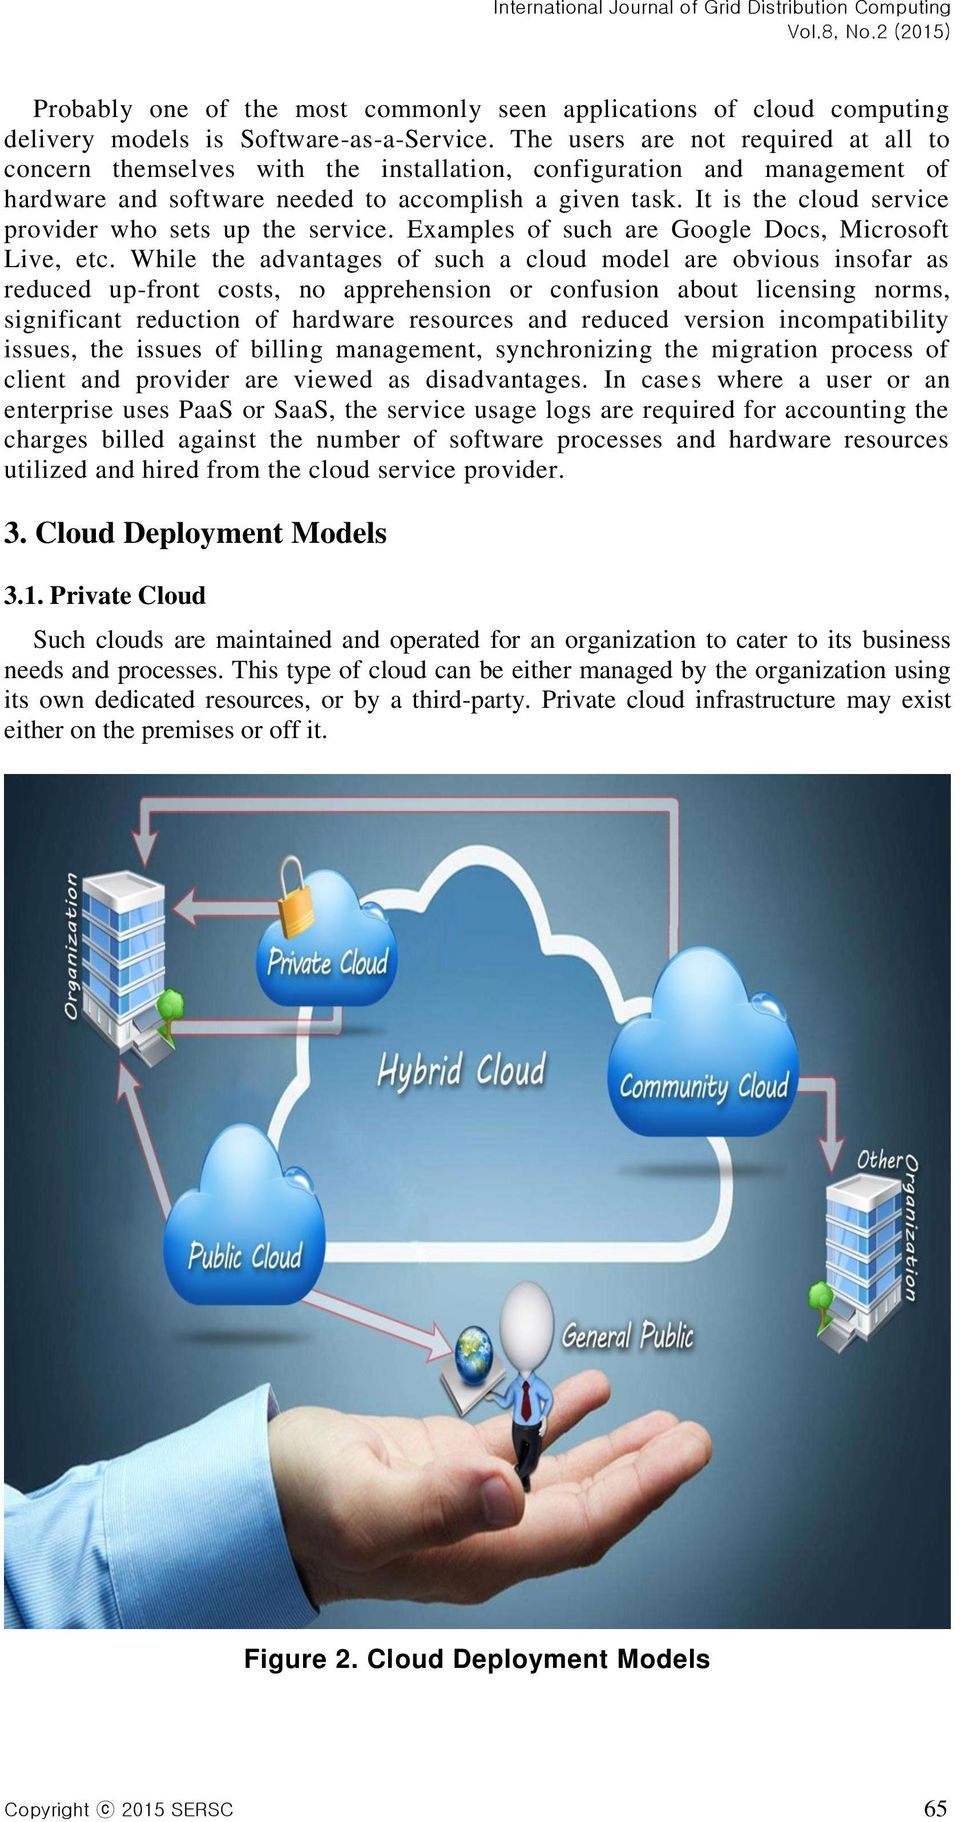 It is the cloud service provider who sets up the service. Examples of such are Google Docs, Microsoft Live, etc.